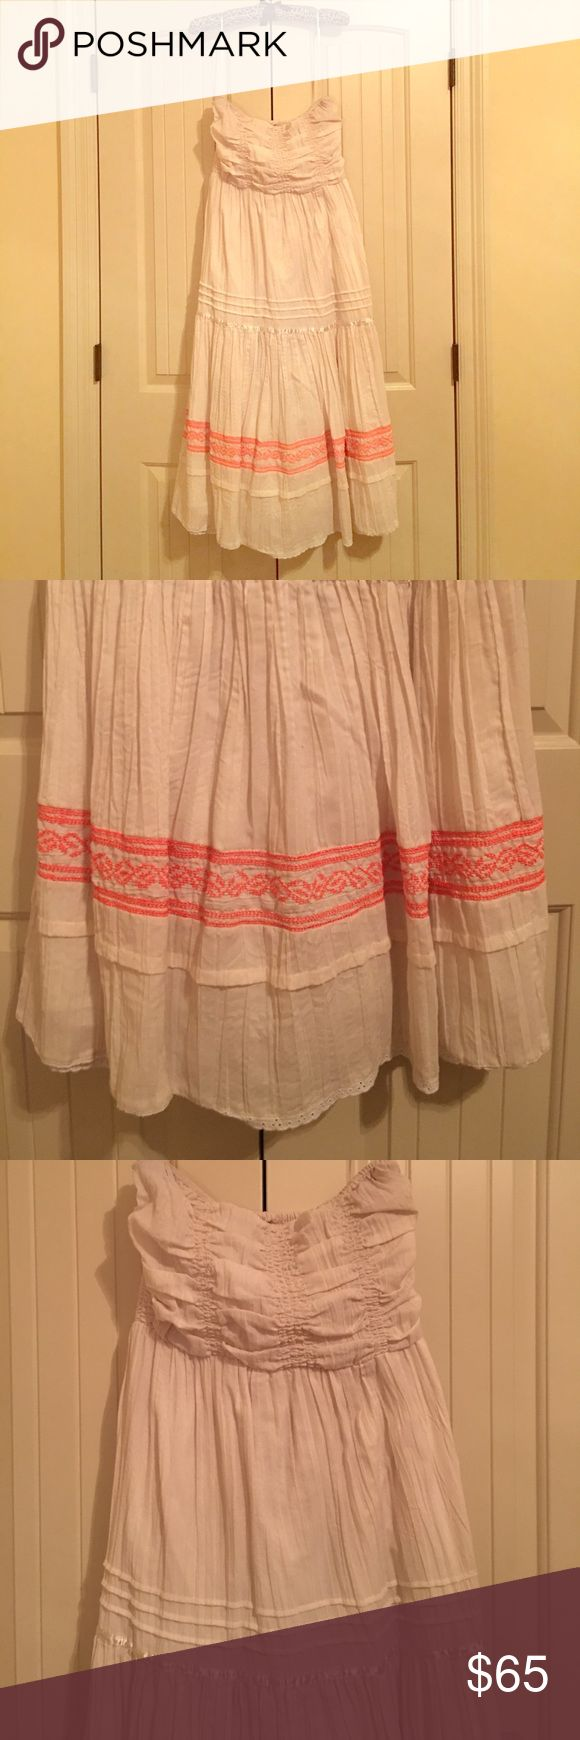 Free People strapless peasant dress - SUMMER MUST! Free People Peasant Dress. Size Medium. Great condition. Ivory colored with neon orange embroidery near bottom. Has slip underneath so not see through. ☀️ Super comfy summer dress to wear over a swimsuit or to a party with wedges! 💖. Exterior shell is 65% polyester and 35% cotton. The inner slip is 100% cotton. Free People Dresses Strapless